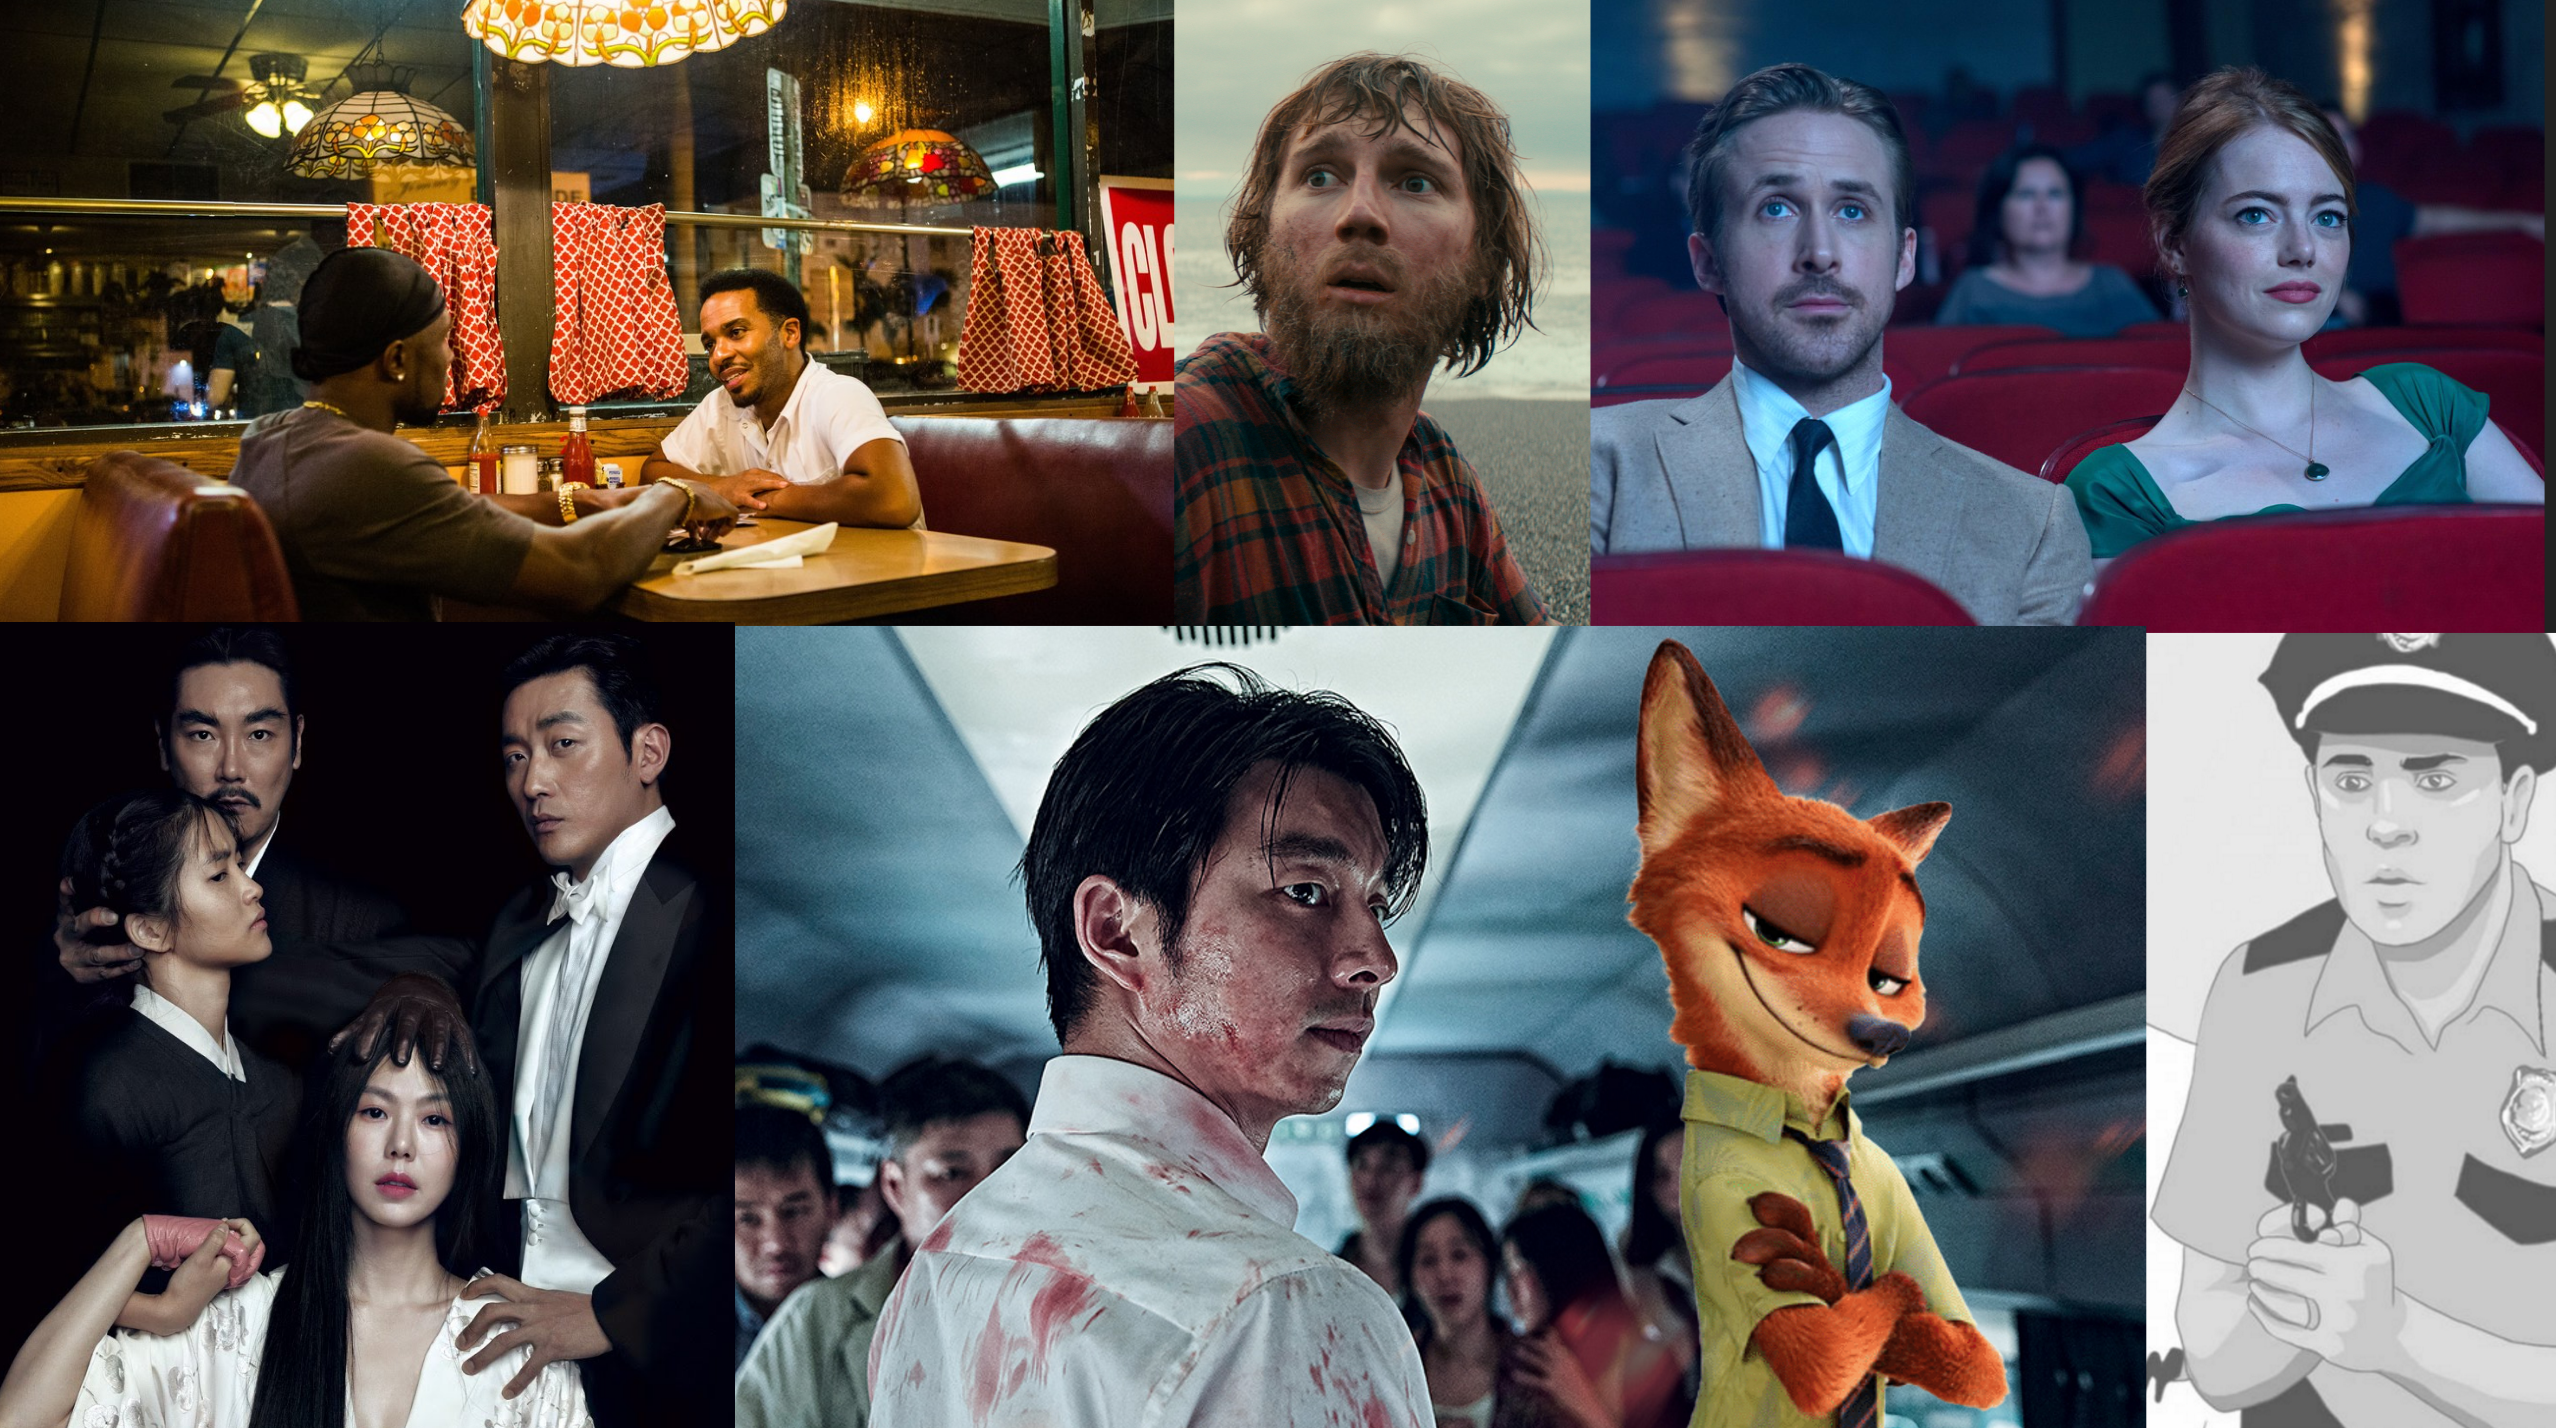 Substream presents the top 25 films of 2016